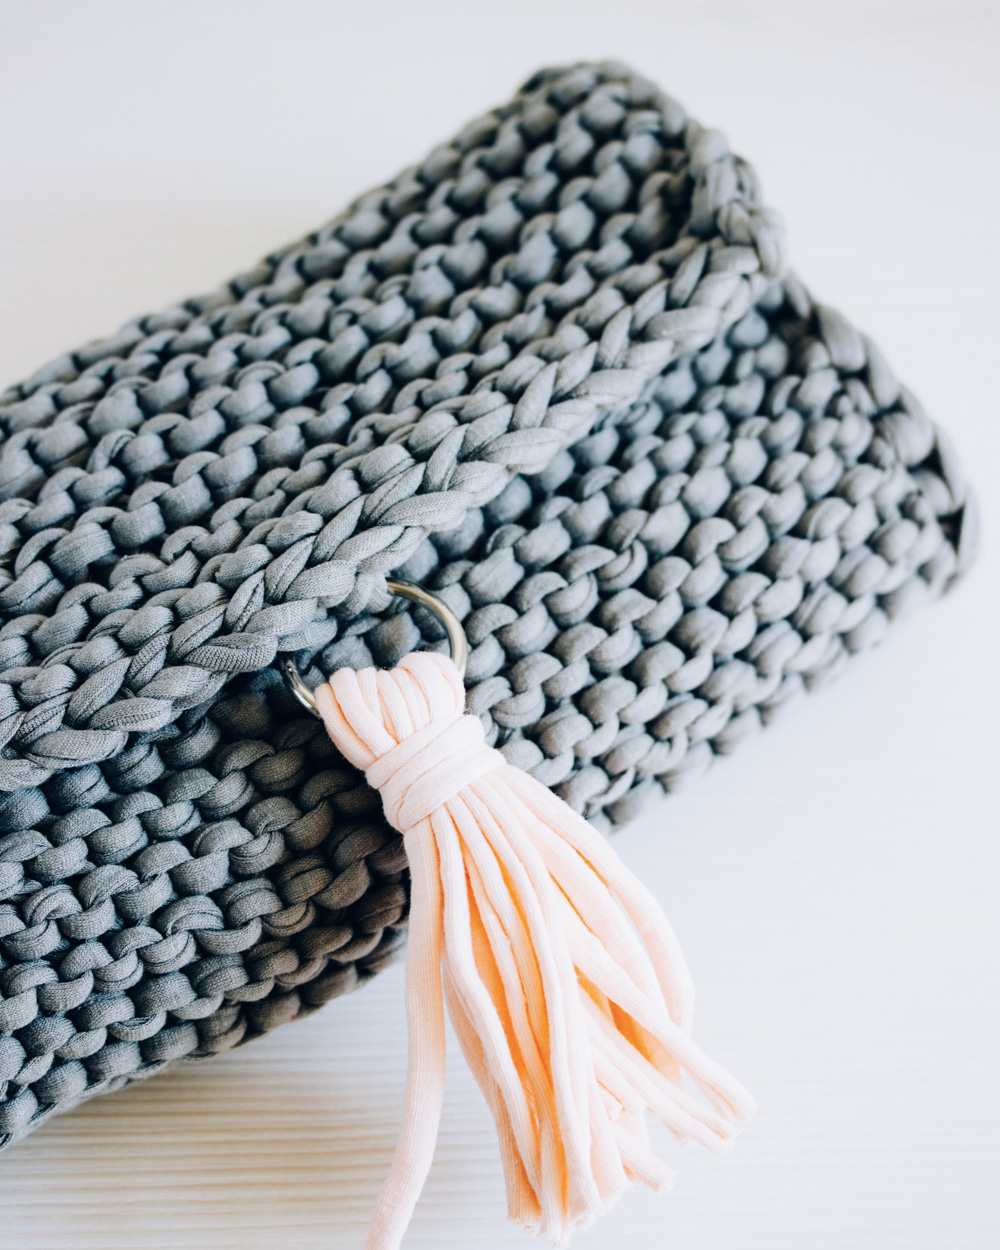 sac a main tricot diy